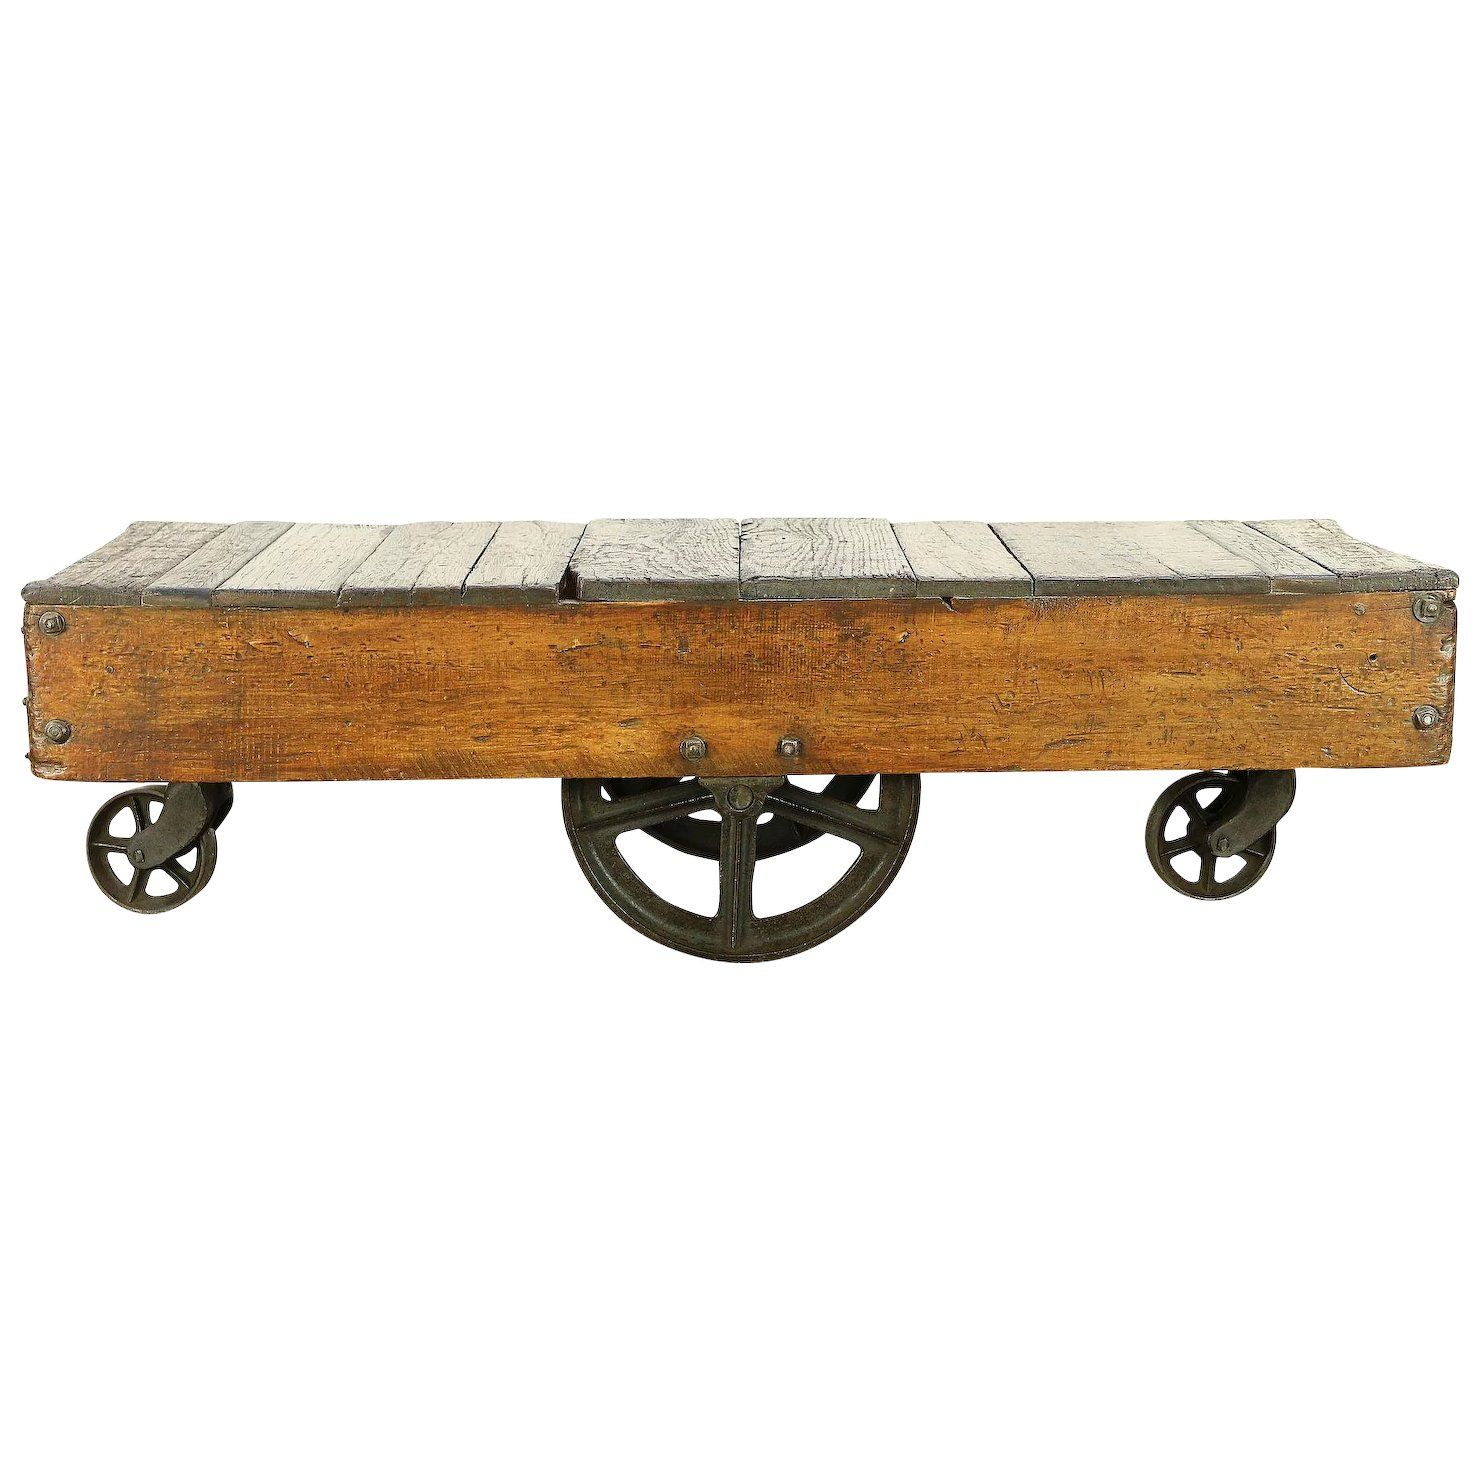 Industrial Salvage Antique Cart Or Trolley Iron Wheels Coffee Table 30303 Coffee Table Antiques Furniture Factory [ 1480 x 1480 Pixel ]